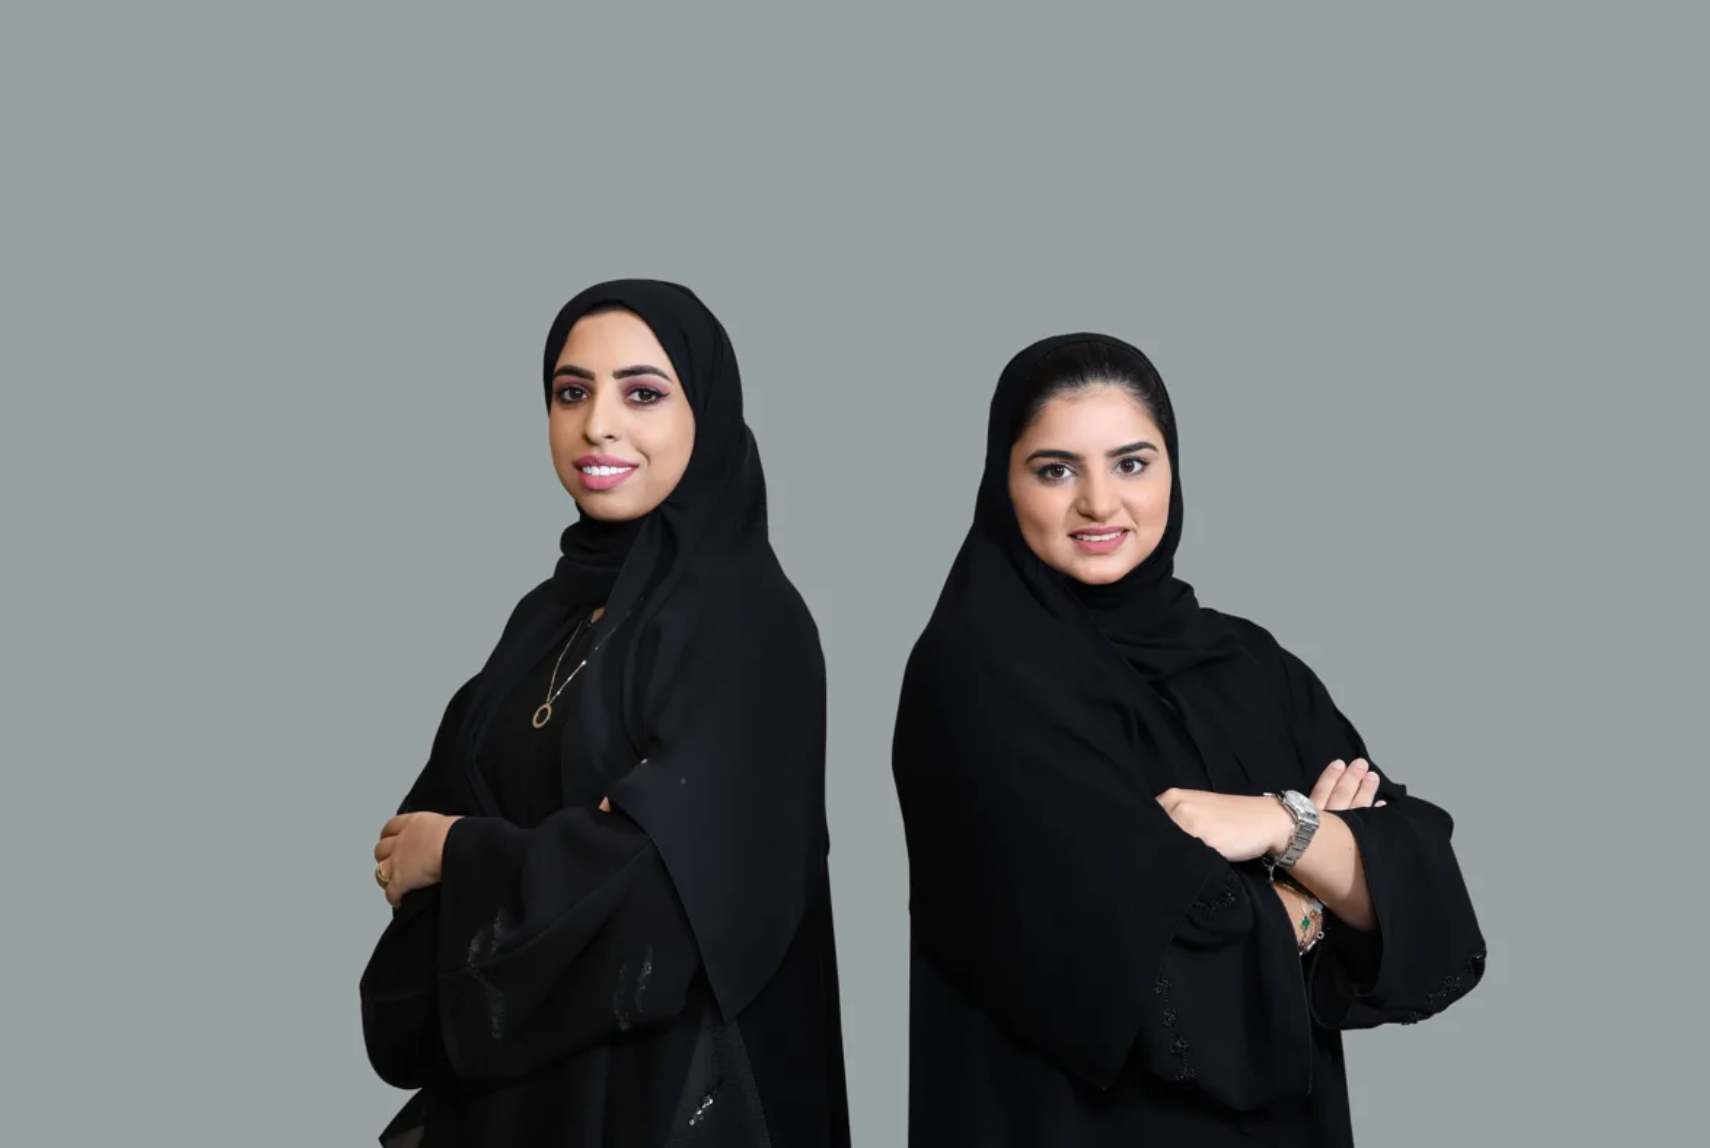 Alyazeya Saeed (right) and Fatma Ahli (left).